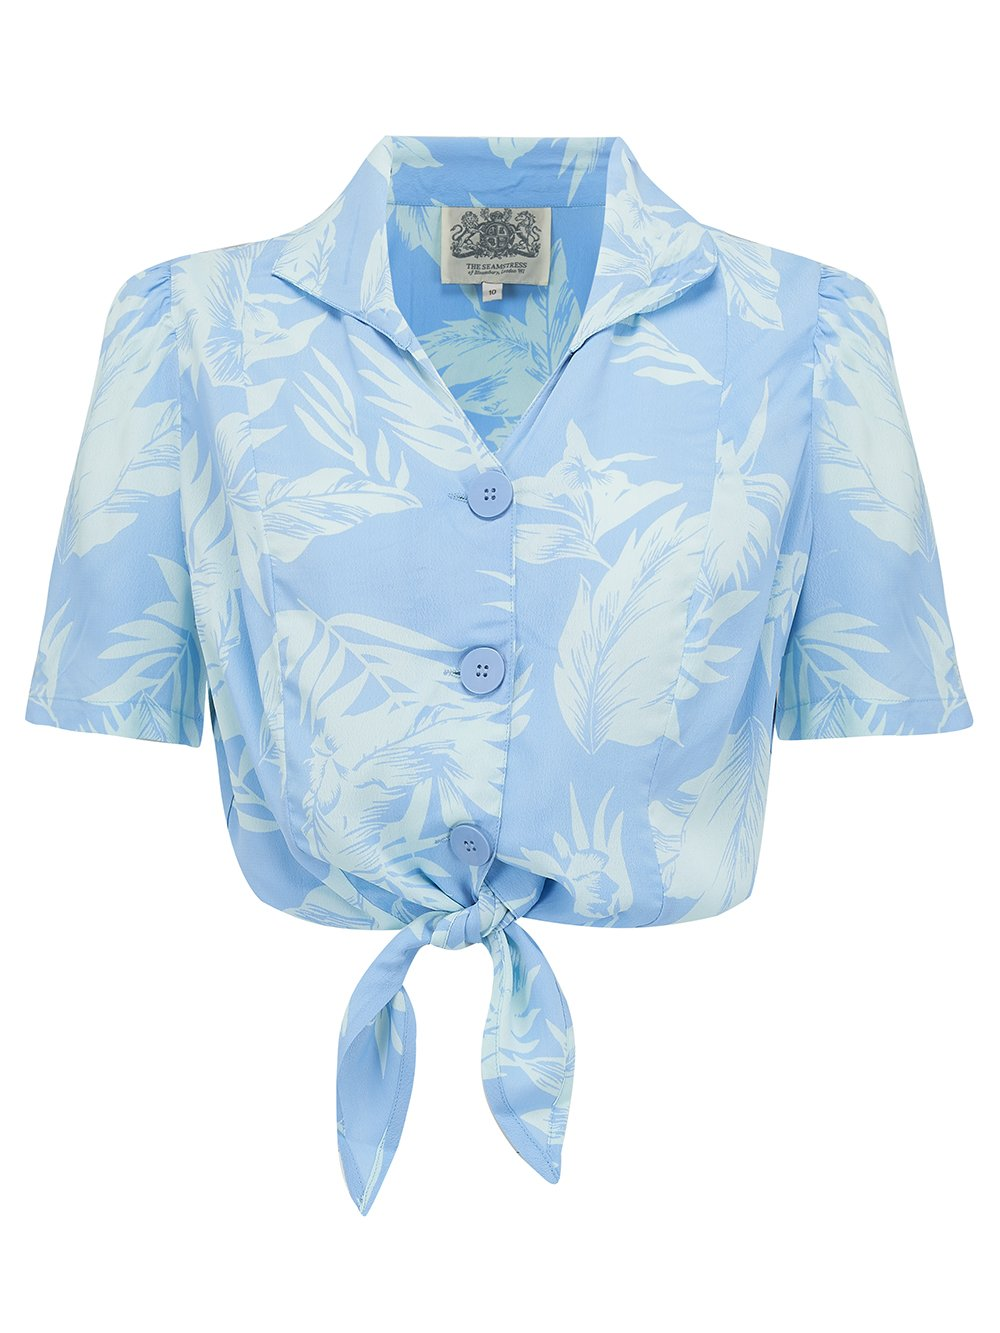 Late 1940's Vintage Inspired 'Marilyn' Tie-Shirt in 'Blue Hawaii' by The Seamstress of Bloomsbury